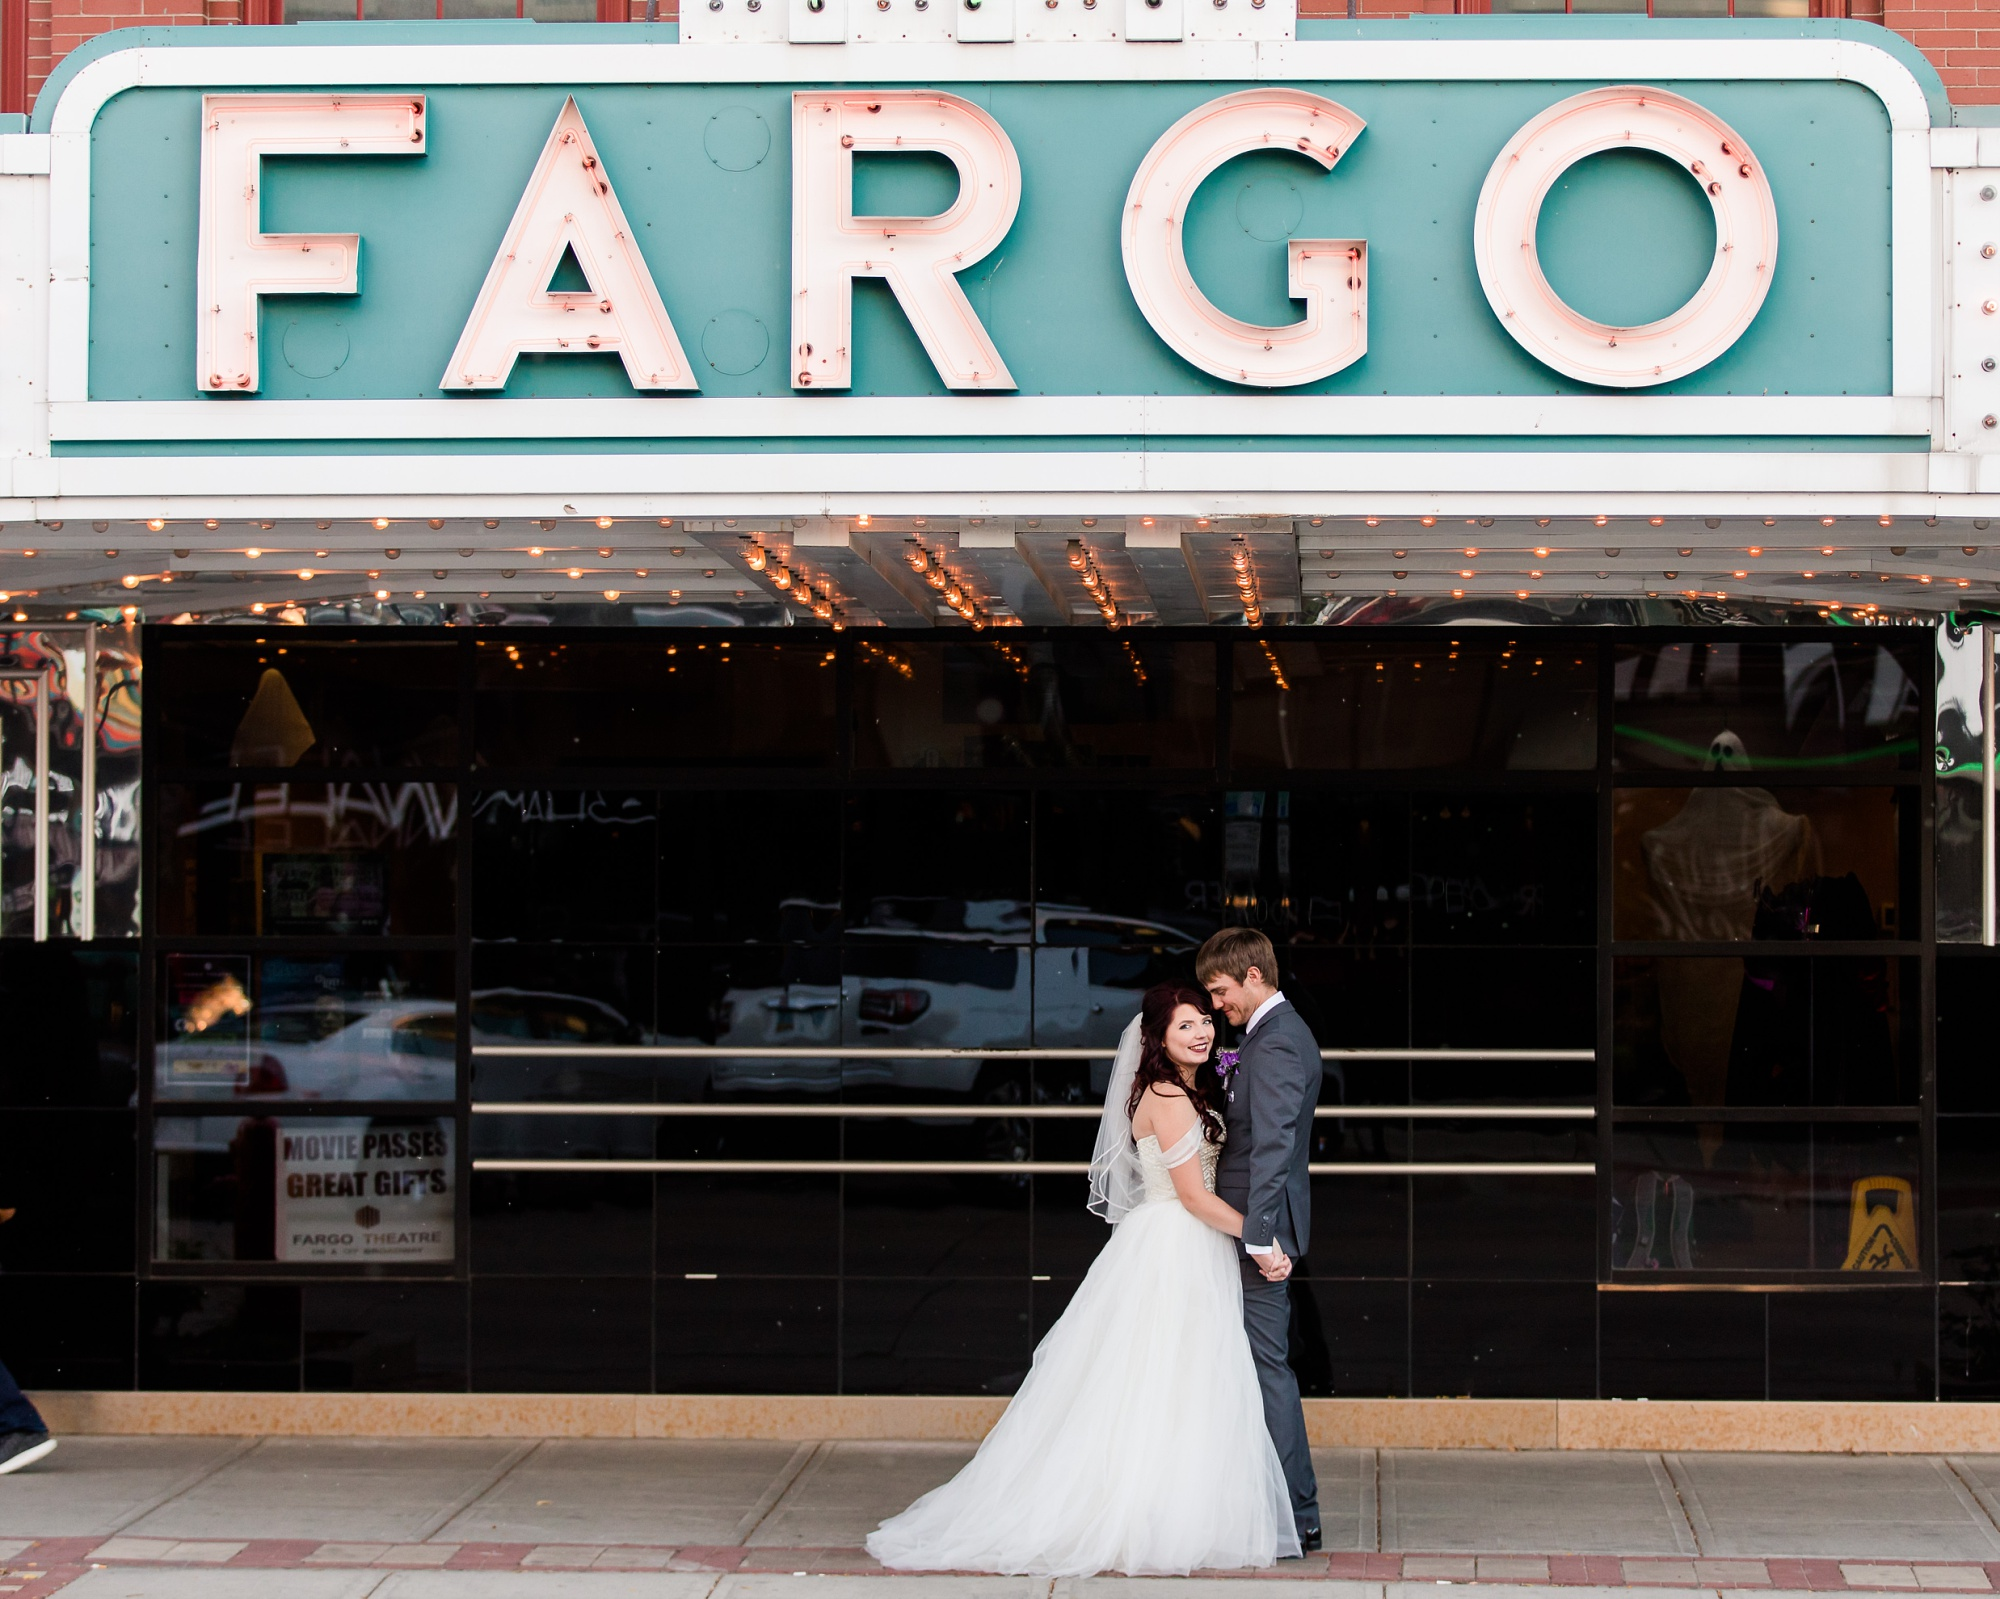 AmberLangerudPhotography_Downtown Fargo, ND Ramada Wedding_3696.jpg